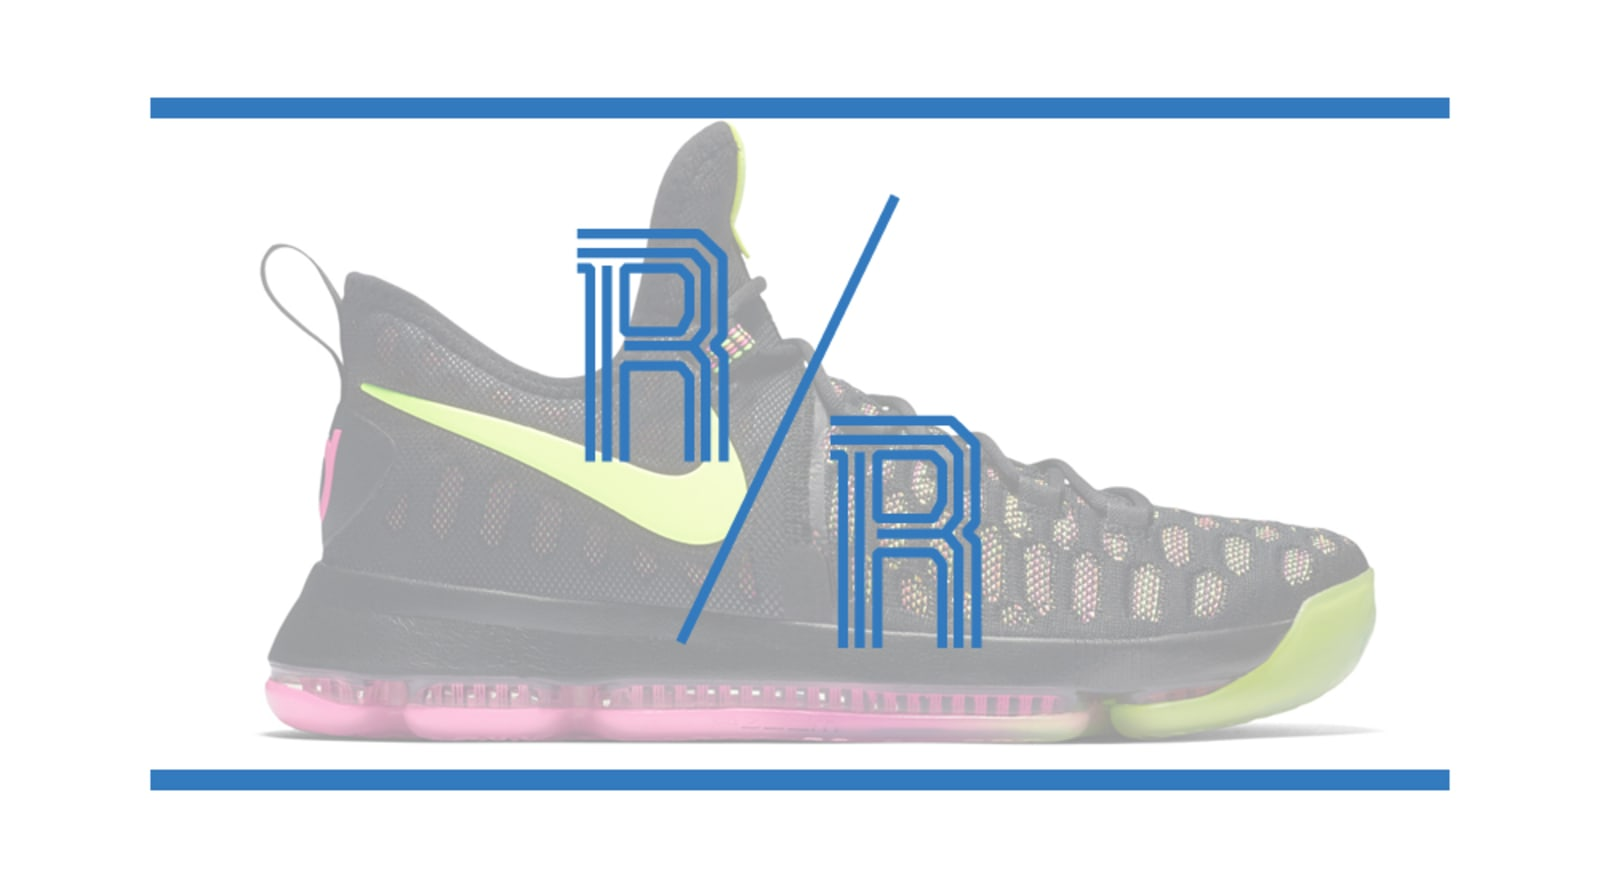 13eb924fe70 After a couple of quiet weekends in a row, the upcoming weekend will  feature a large volume of sneaker releases from the likes of Nike, adidas,  Under Armour ...